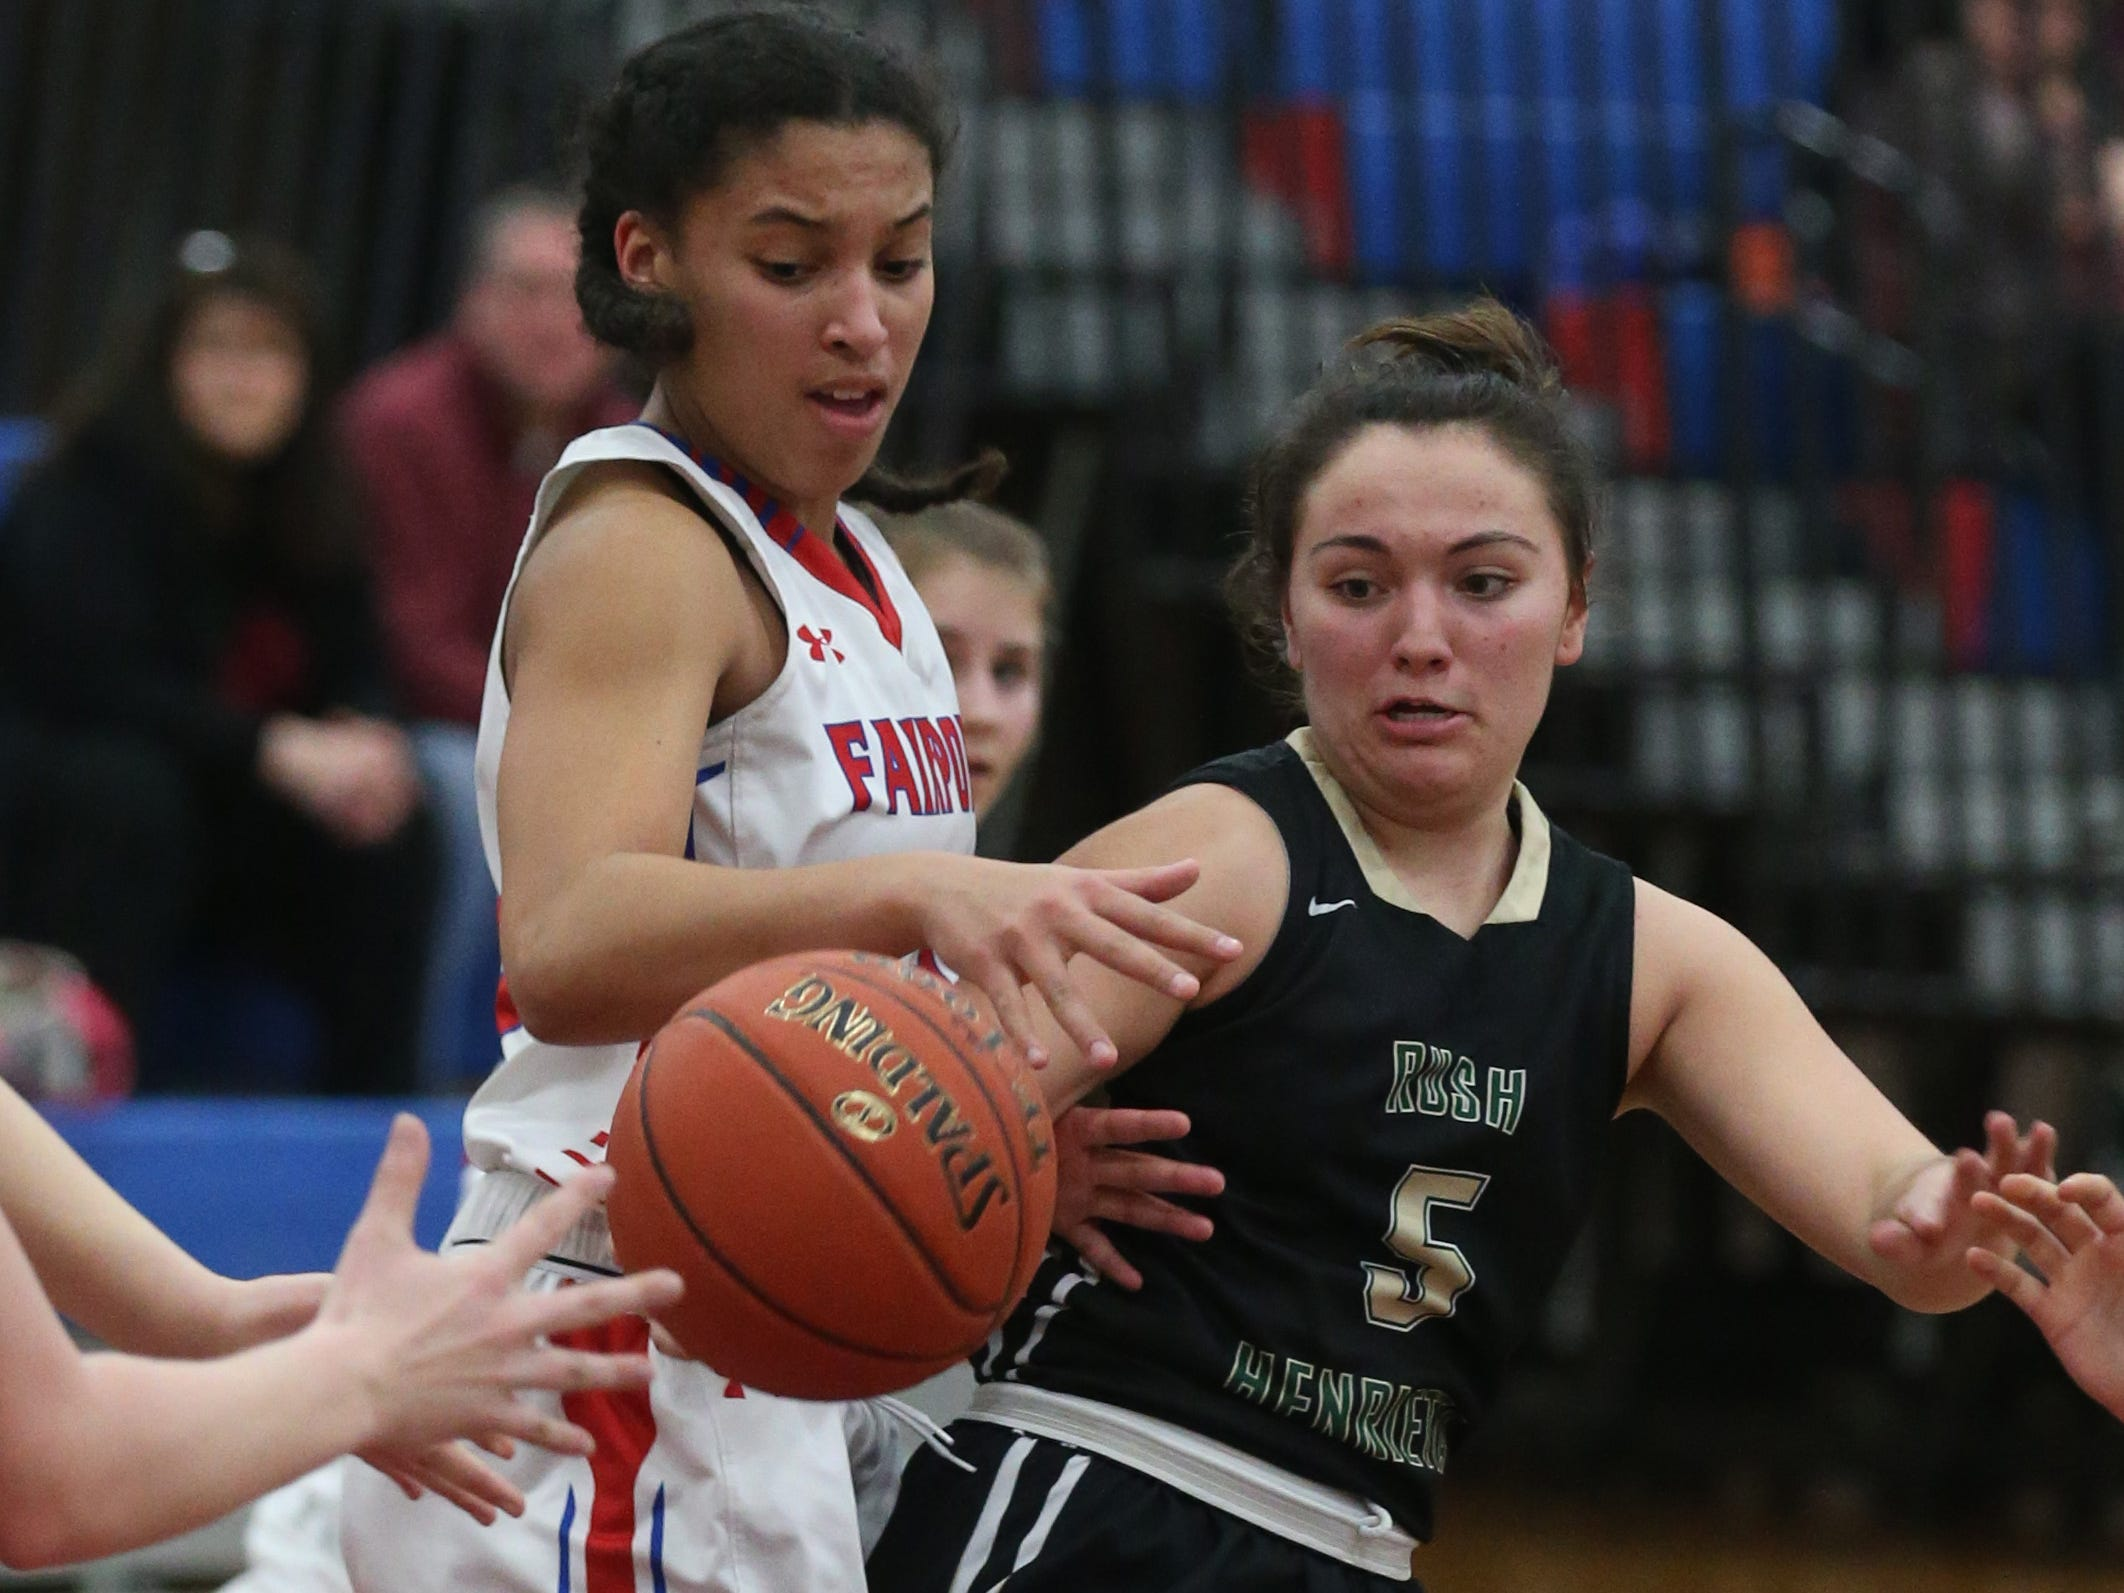 Rush-Henrietta's Kaila Herring, right, and Fairport's Ella Meabon, left, scramble for a loose ball.